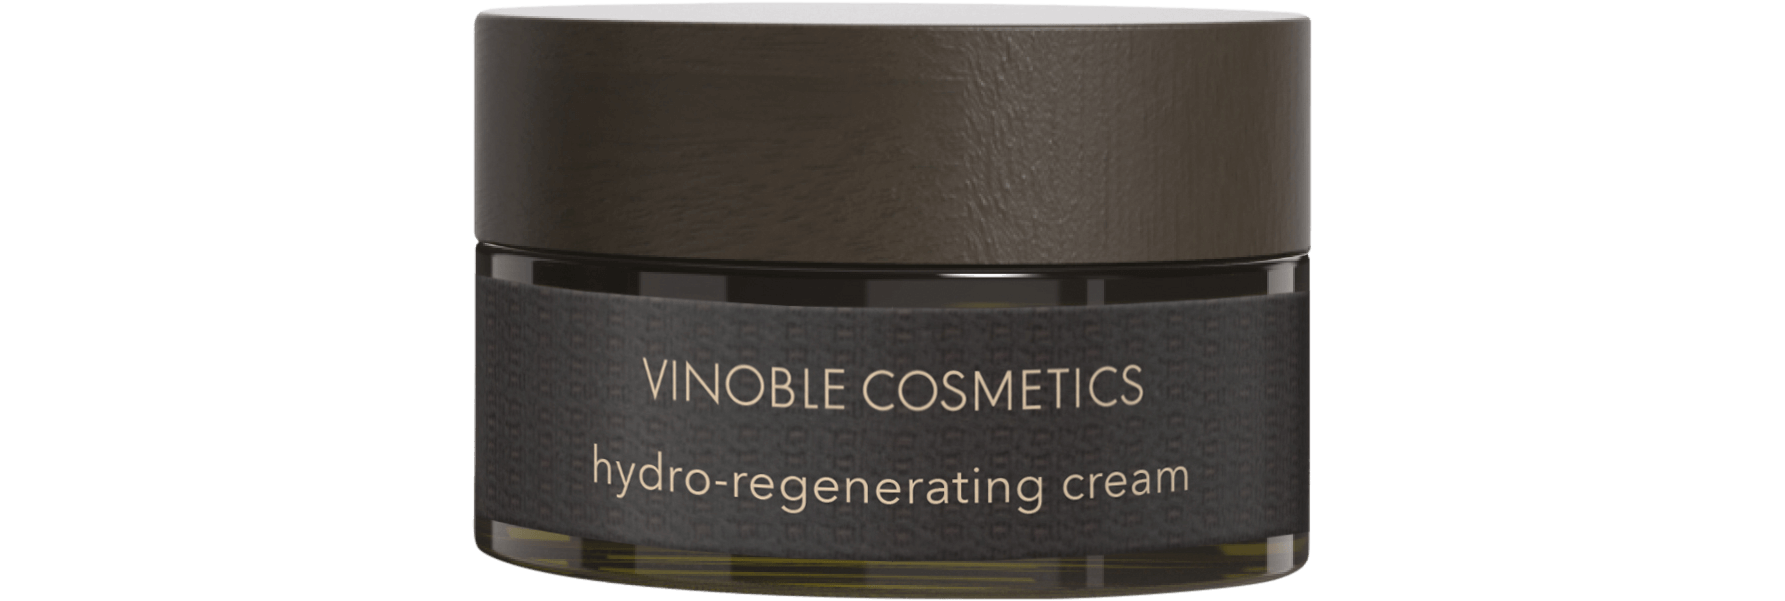 hydro-regenerating cream